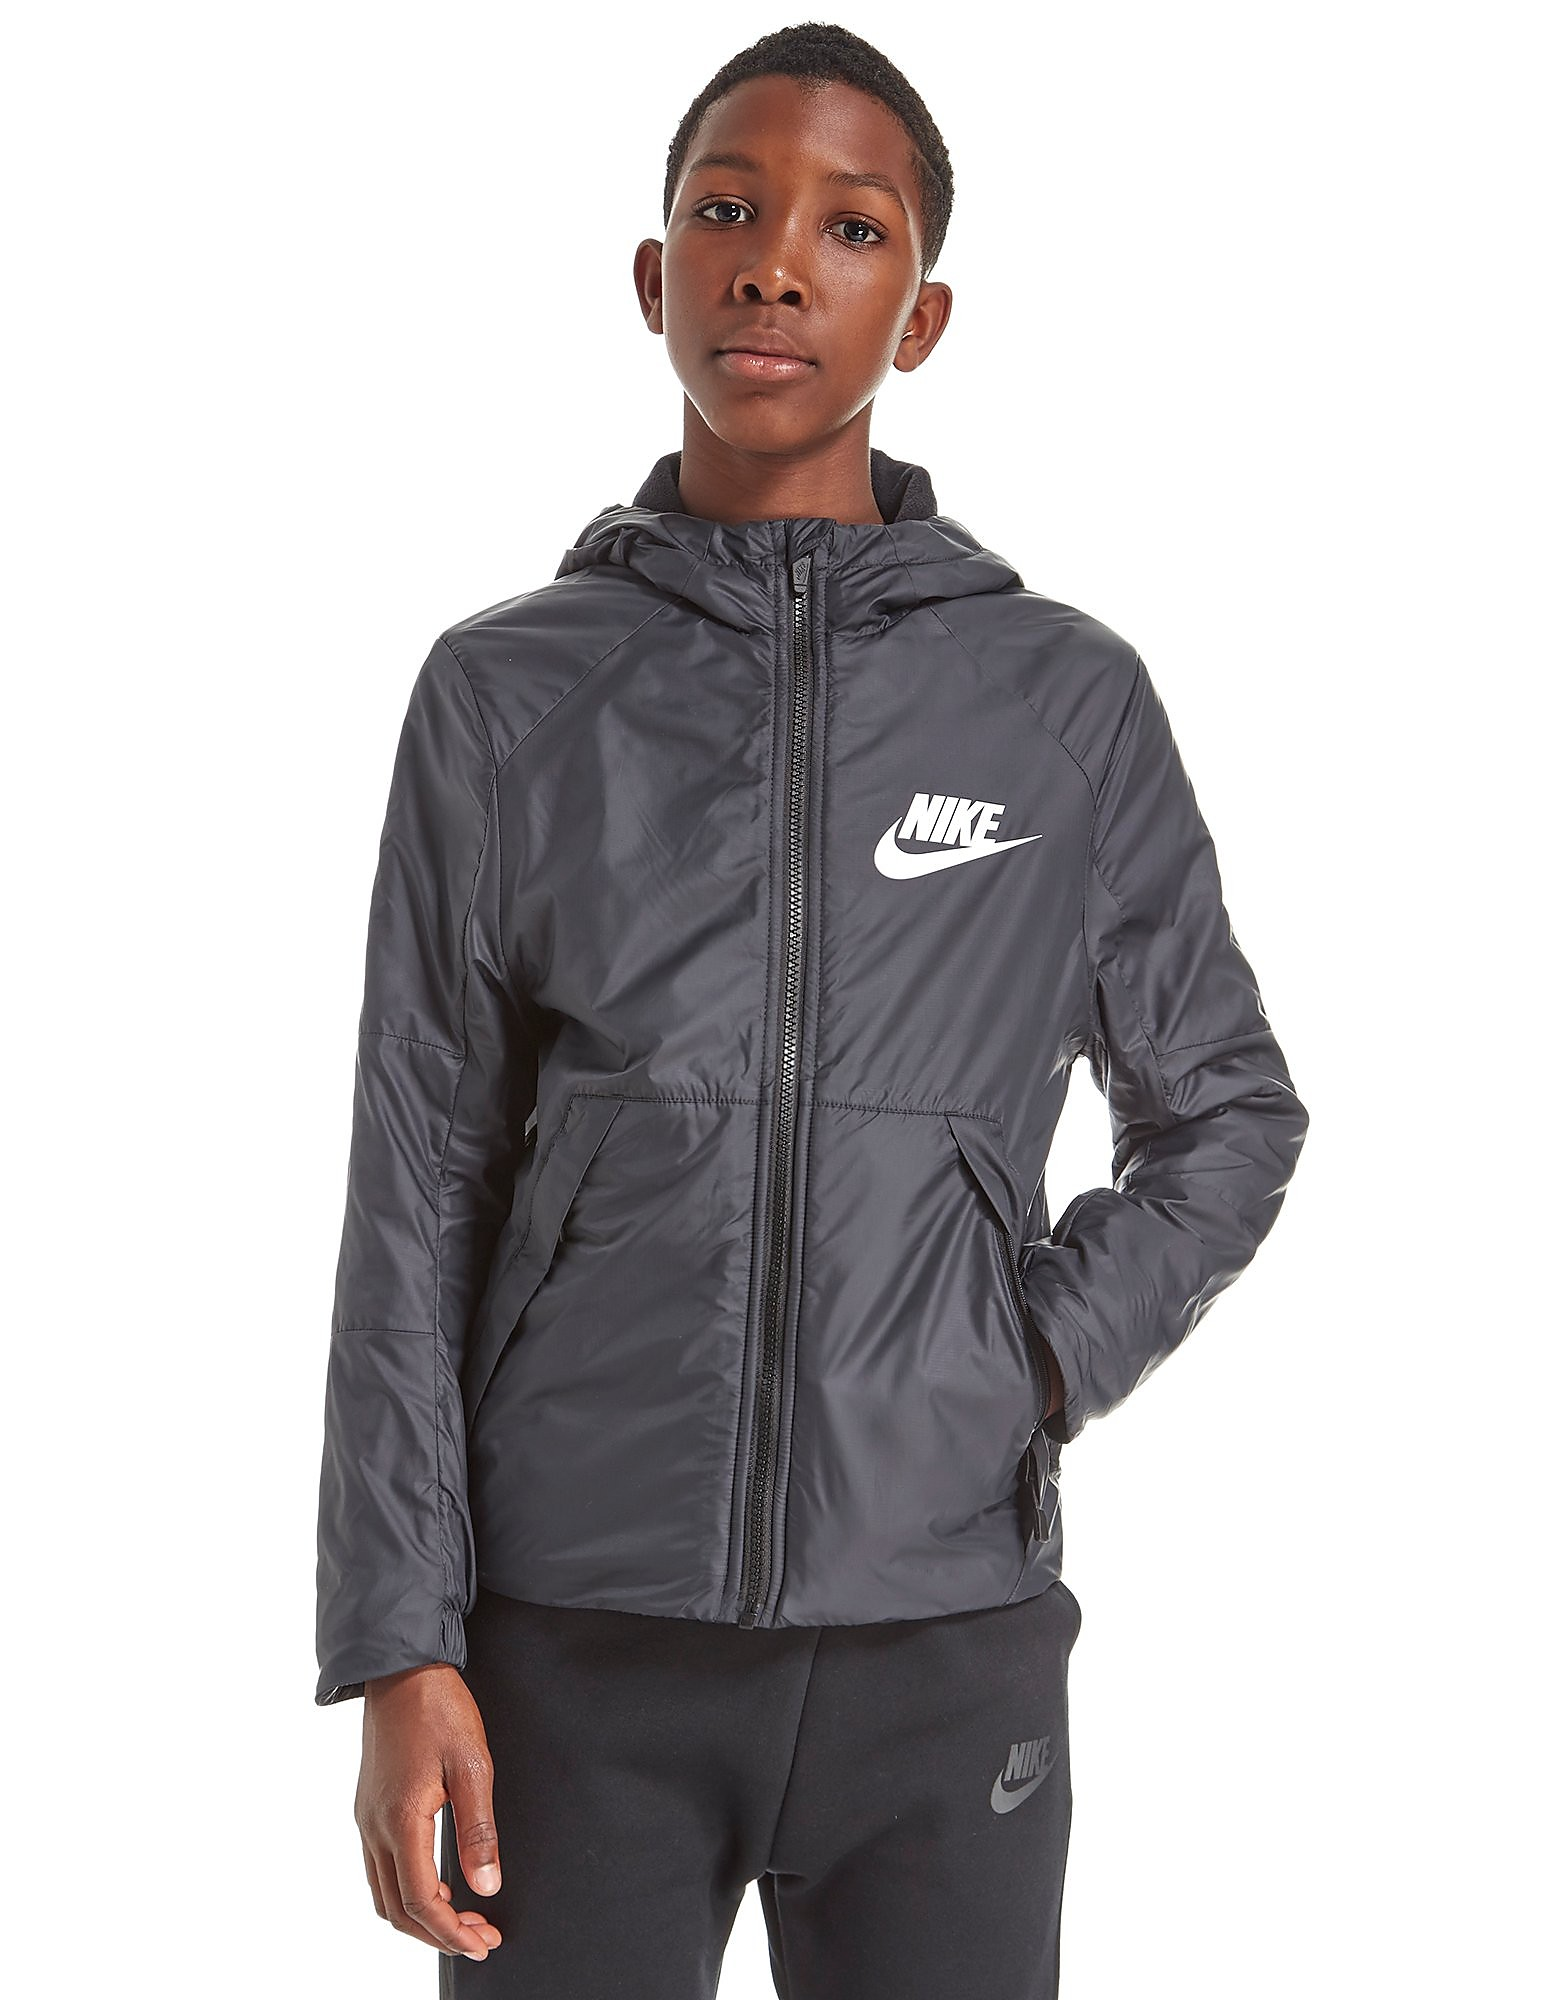 Nike Fleece-Lined Jacket